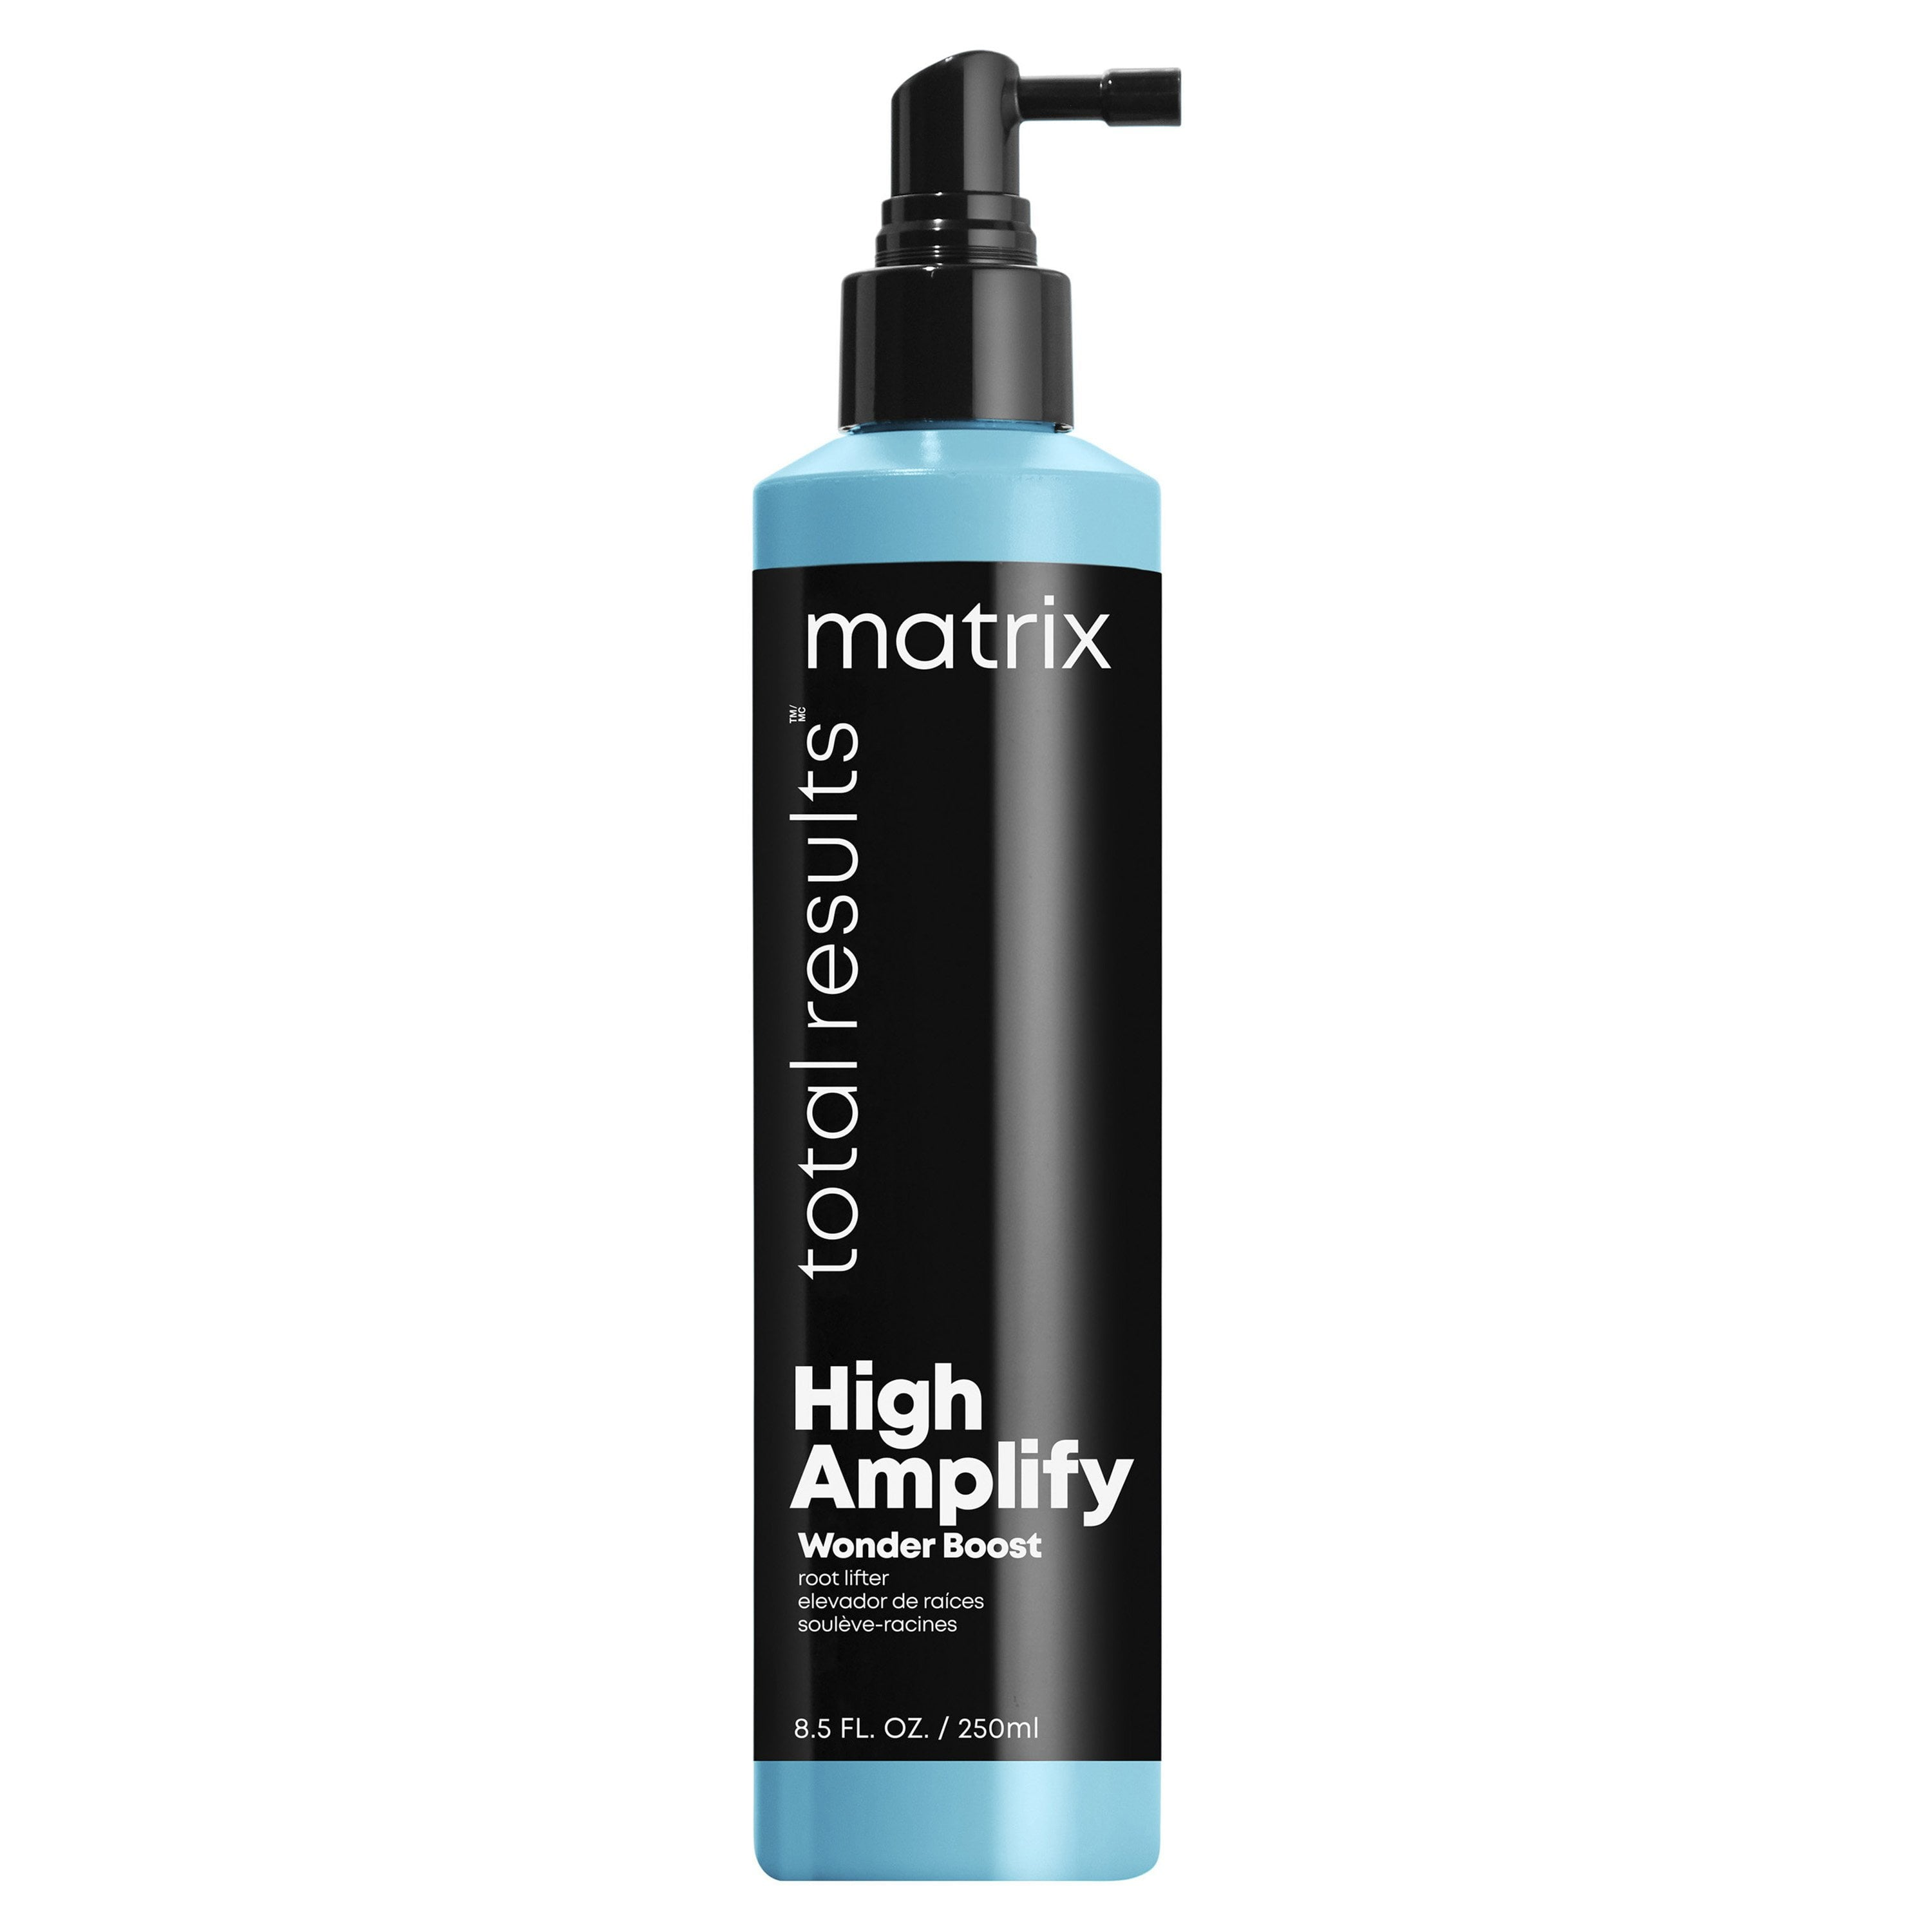 Matrix Total Results High Amplify Wonderboost Root Lifter 250ml product shot